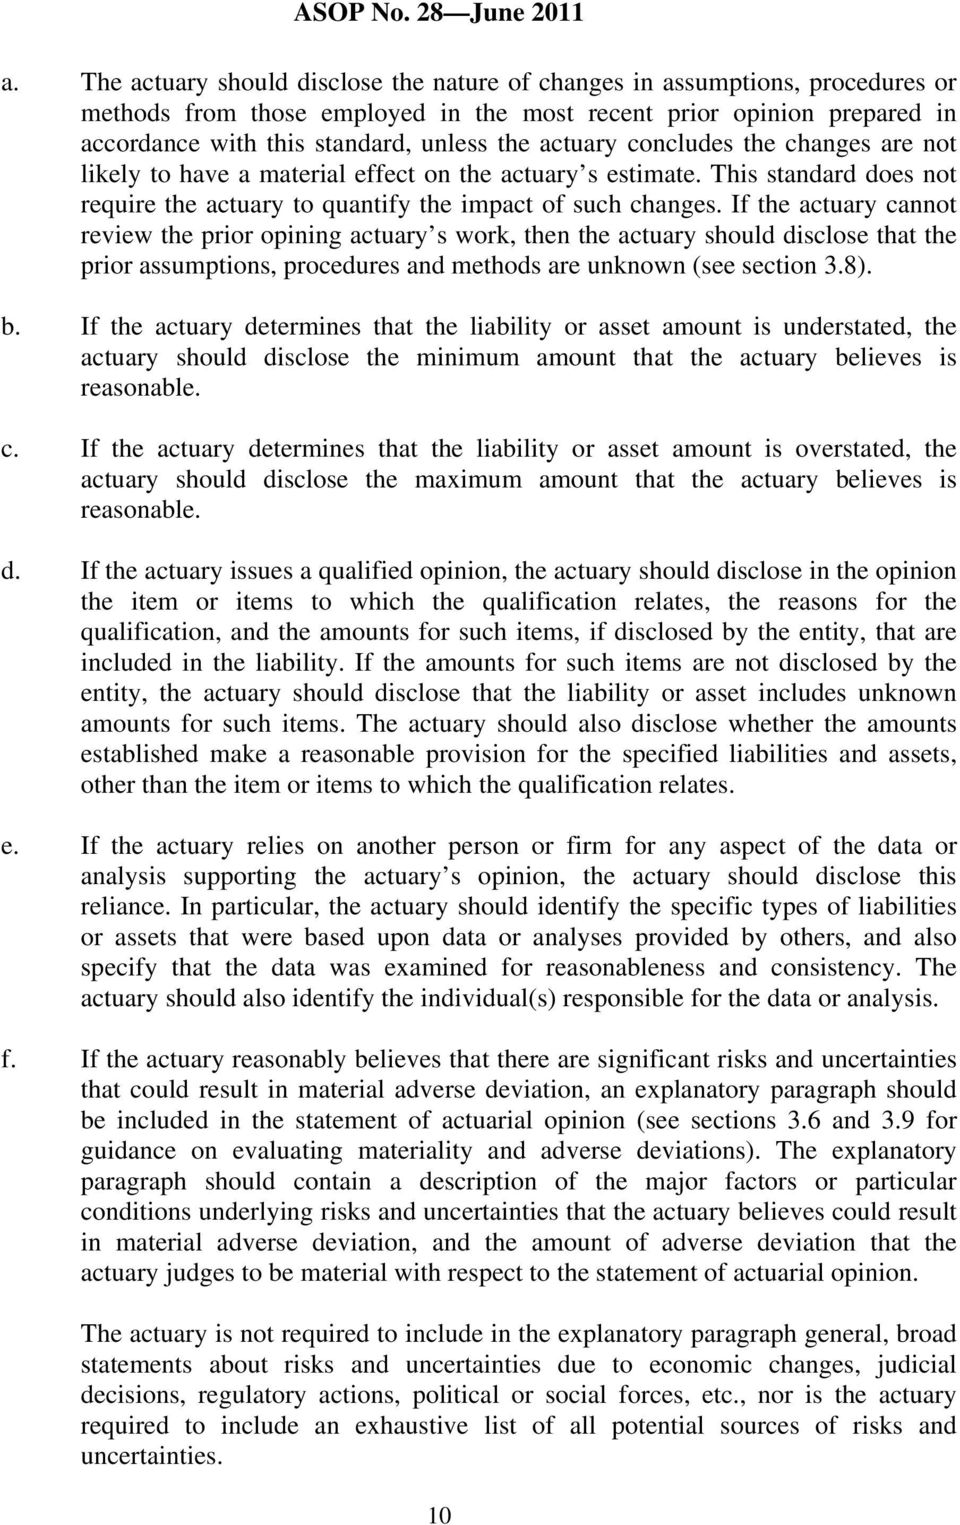 If the actuary cannot review the prior opining actuary s work, then the actuary should disclose that the prior assumptions, procedures and methods are unknown (see section 3.8). b.